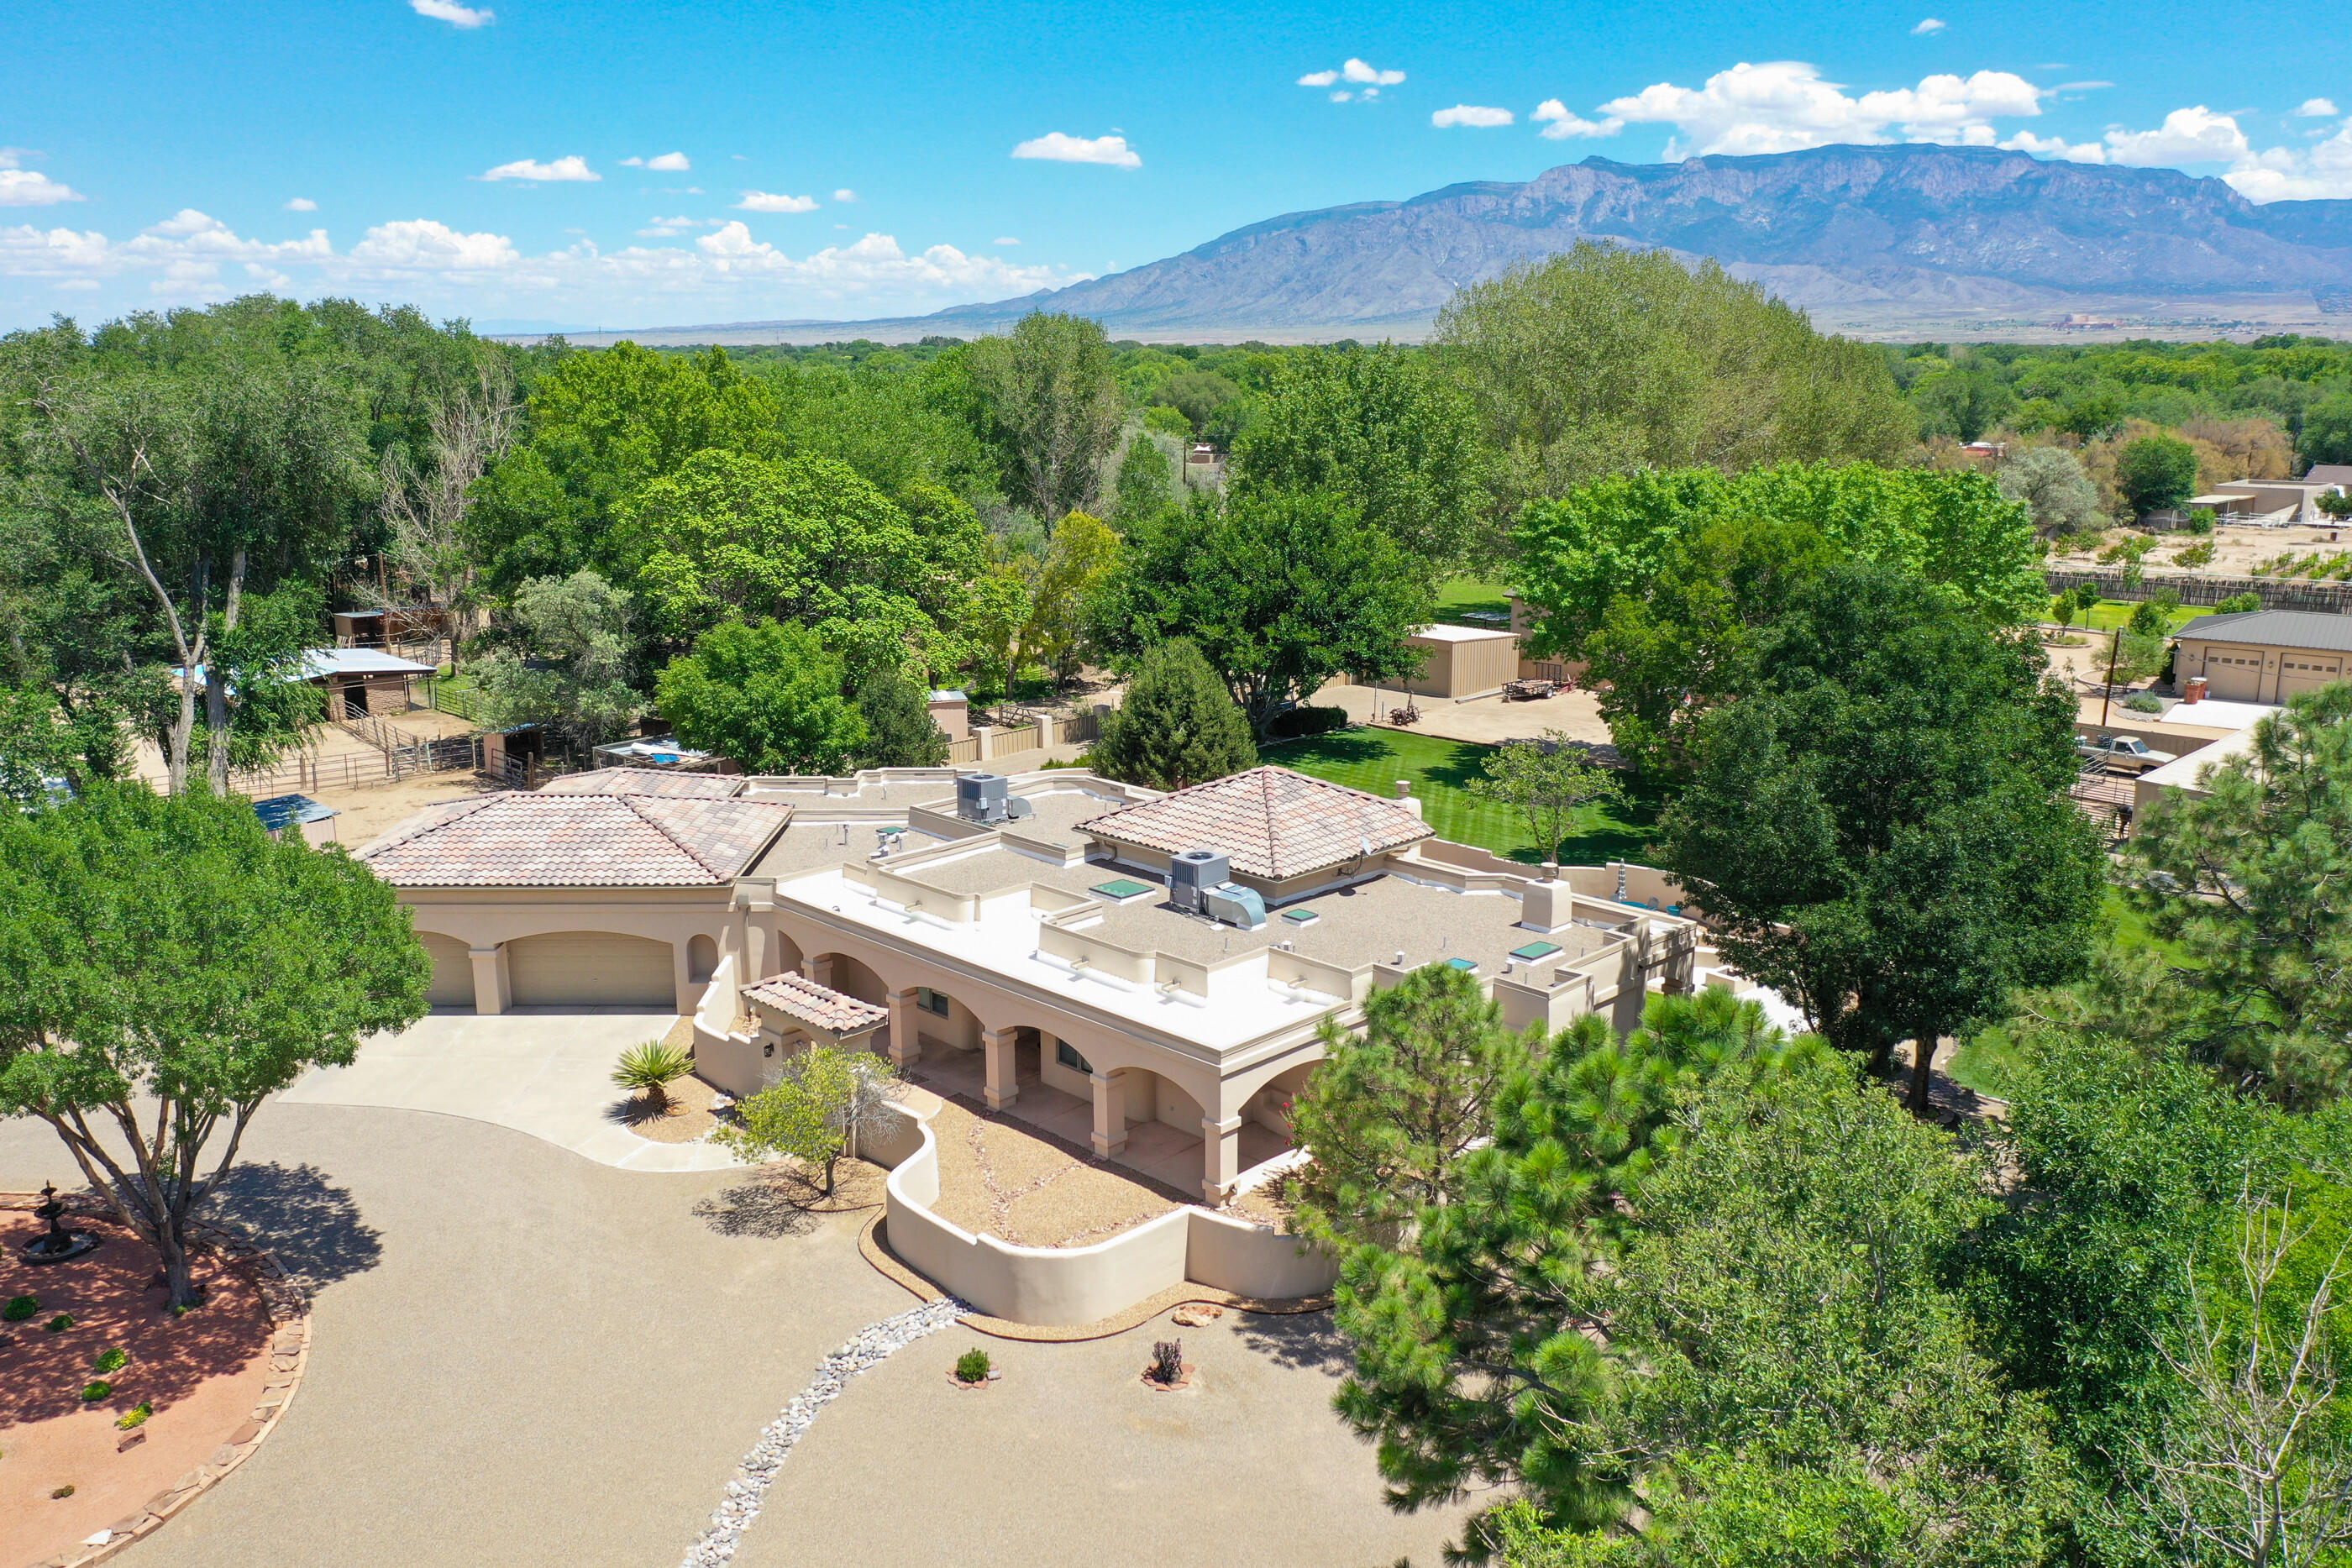 Welcome to this stunning property located at the South end of Corrales, offered by the original owners.  Situated on over an acre, you'll want to spend time enjoying the lush green outdoors and mountain views.  Wonderful floor plan featuring a large great room with high ceilings accented by beautiful vigas on tongue & groove wood slats.  Large kitchen with great storage and a formal dining space.  Beautiful horse facilities with 3 stalls, tack room & riding arena both with lighting, and a horse wash area too.  Just minutes to the Bosque Trail.  Pride of ownership throughout including high quality & timeless finishes.  New synthetic stucco and new roof recently installed, this property has been impeccably maintained. Irrigation through MRGCD.